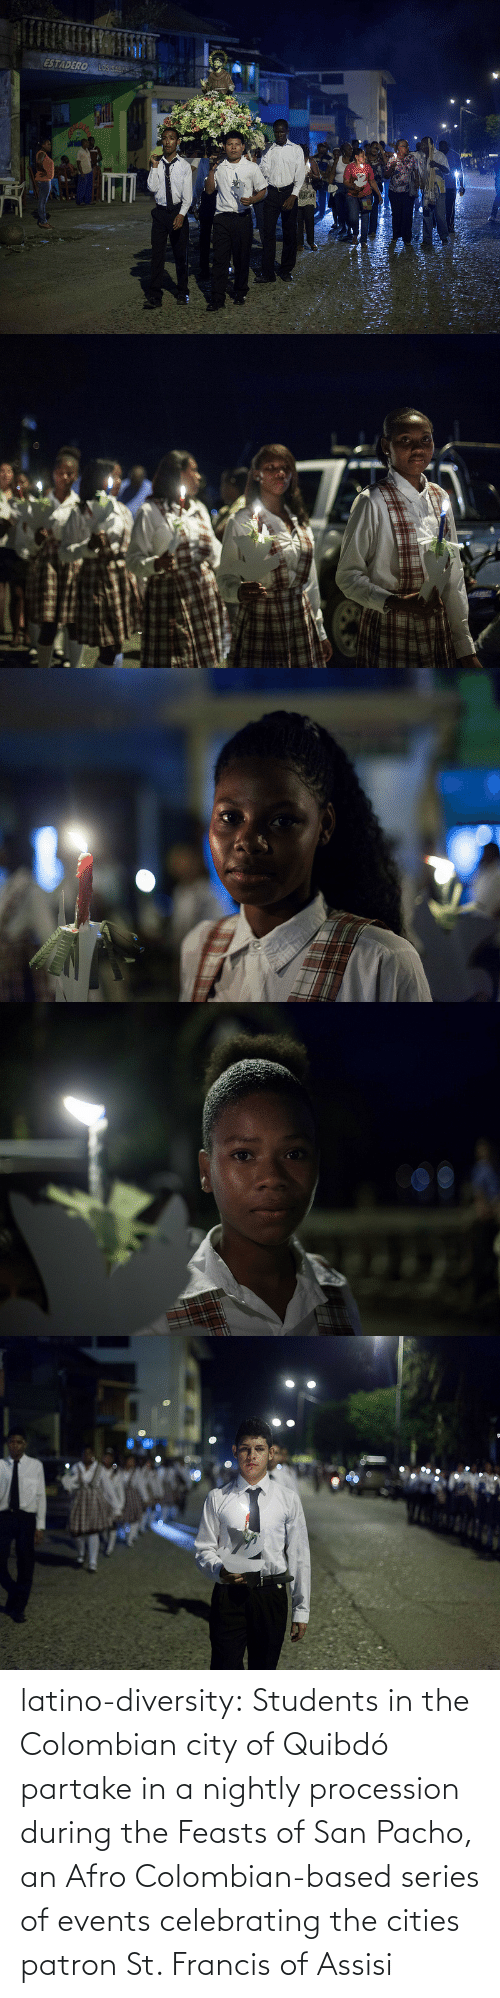 st francis: ESTADERO LOS SABAN   WILU latino-diversity:  Students in the Colombian city of Quibdó partake in a nightly procession during the Feasts of San Pacho, an Afro Colombian-based series of events celebrating the cities patron St. Francis of Assisi